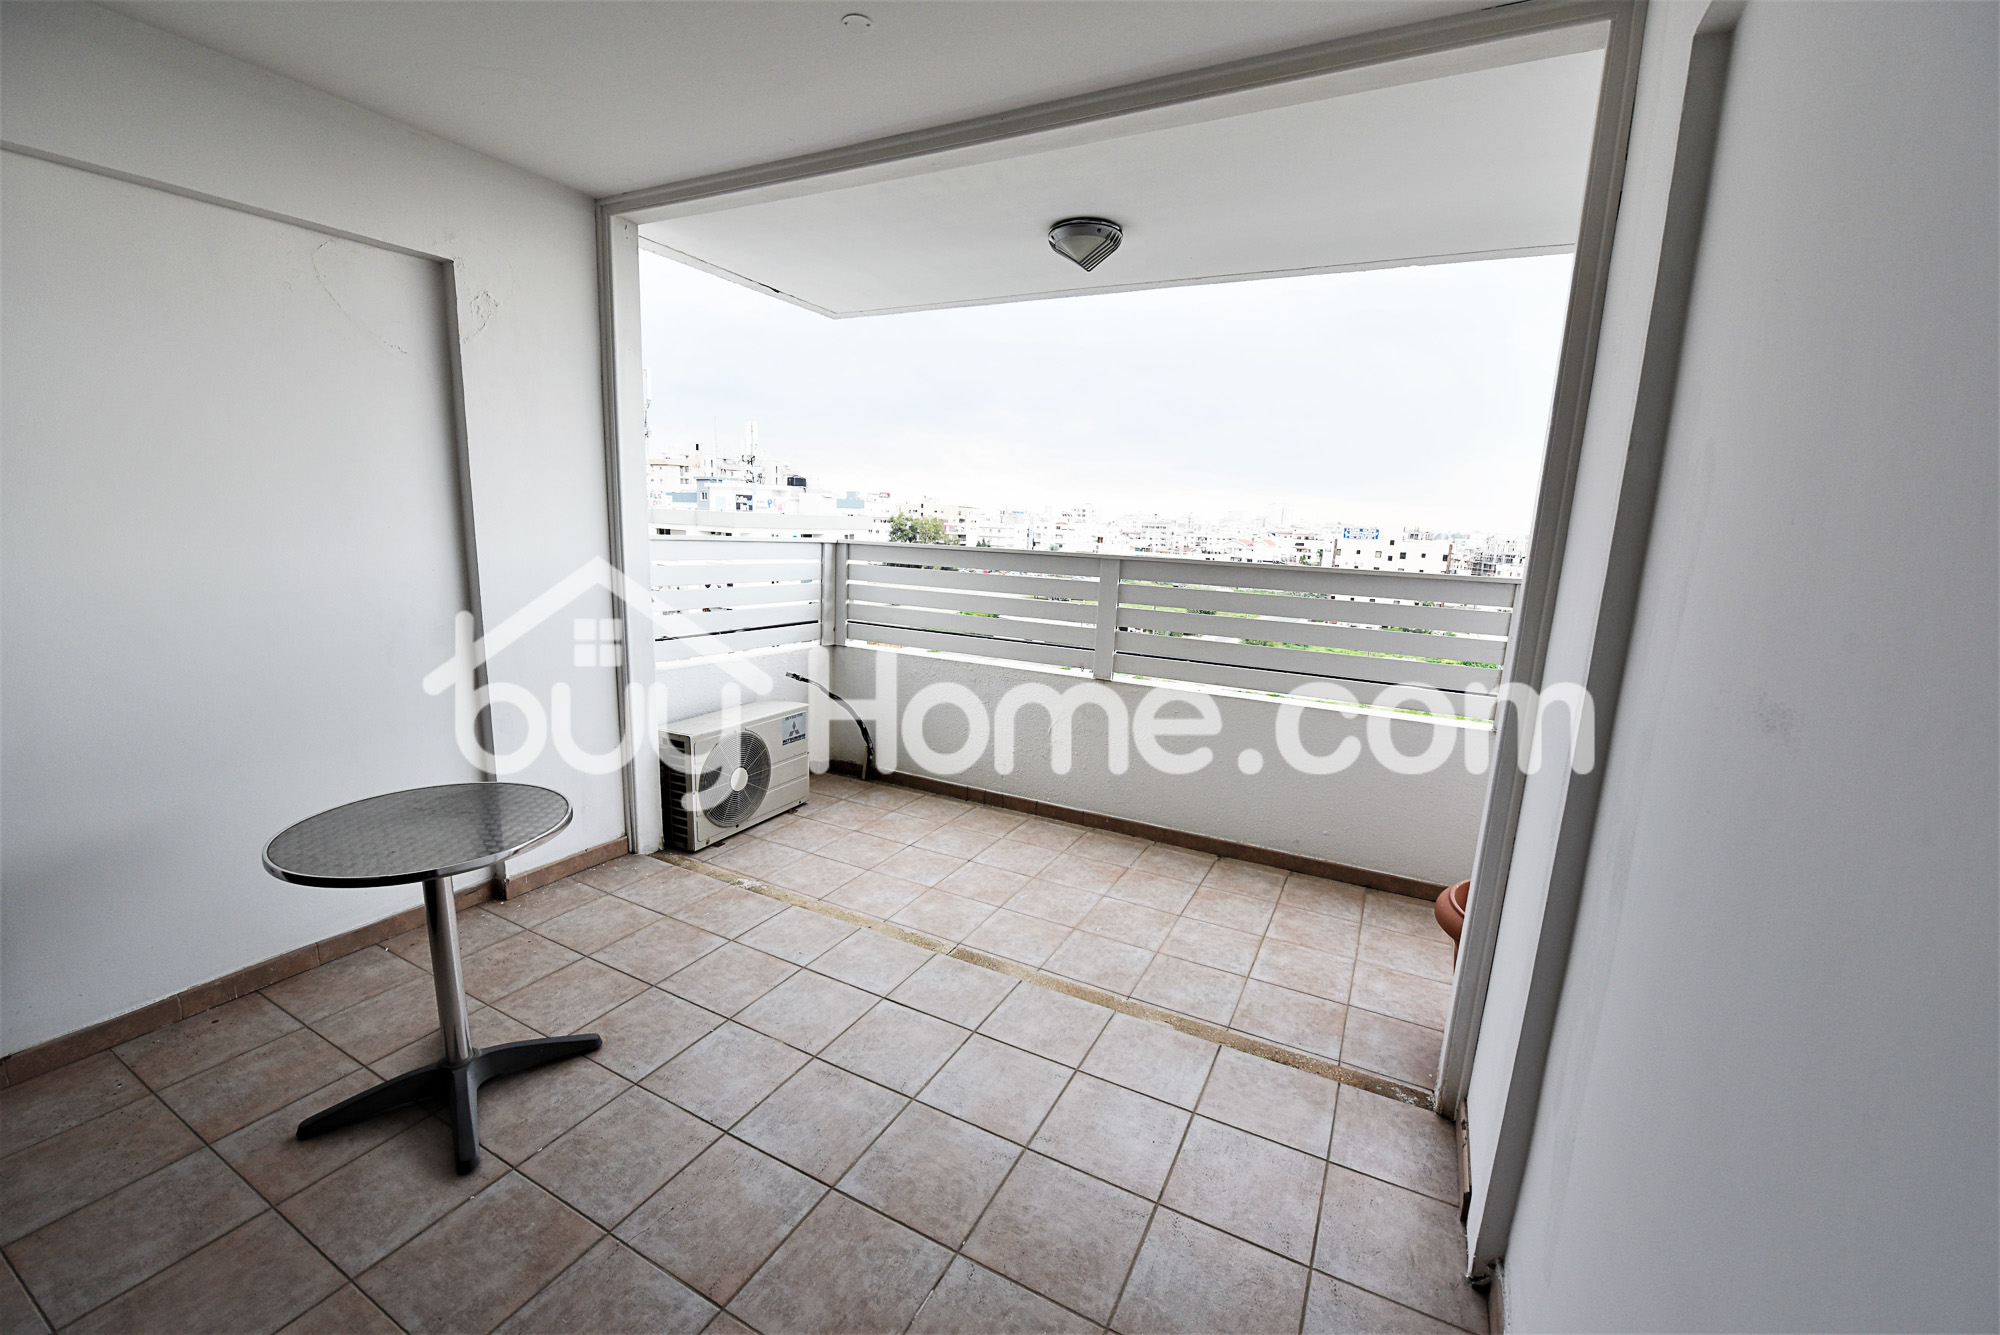 Spacious 3 Bedroom Apartment | BuyHome